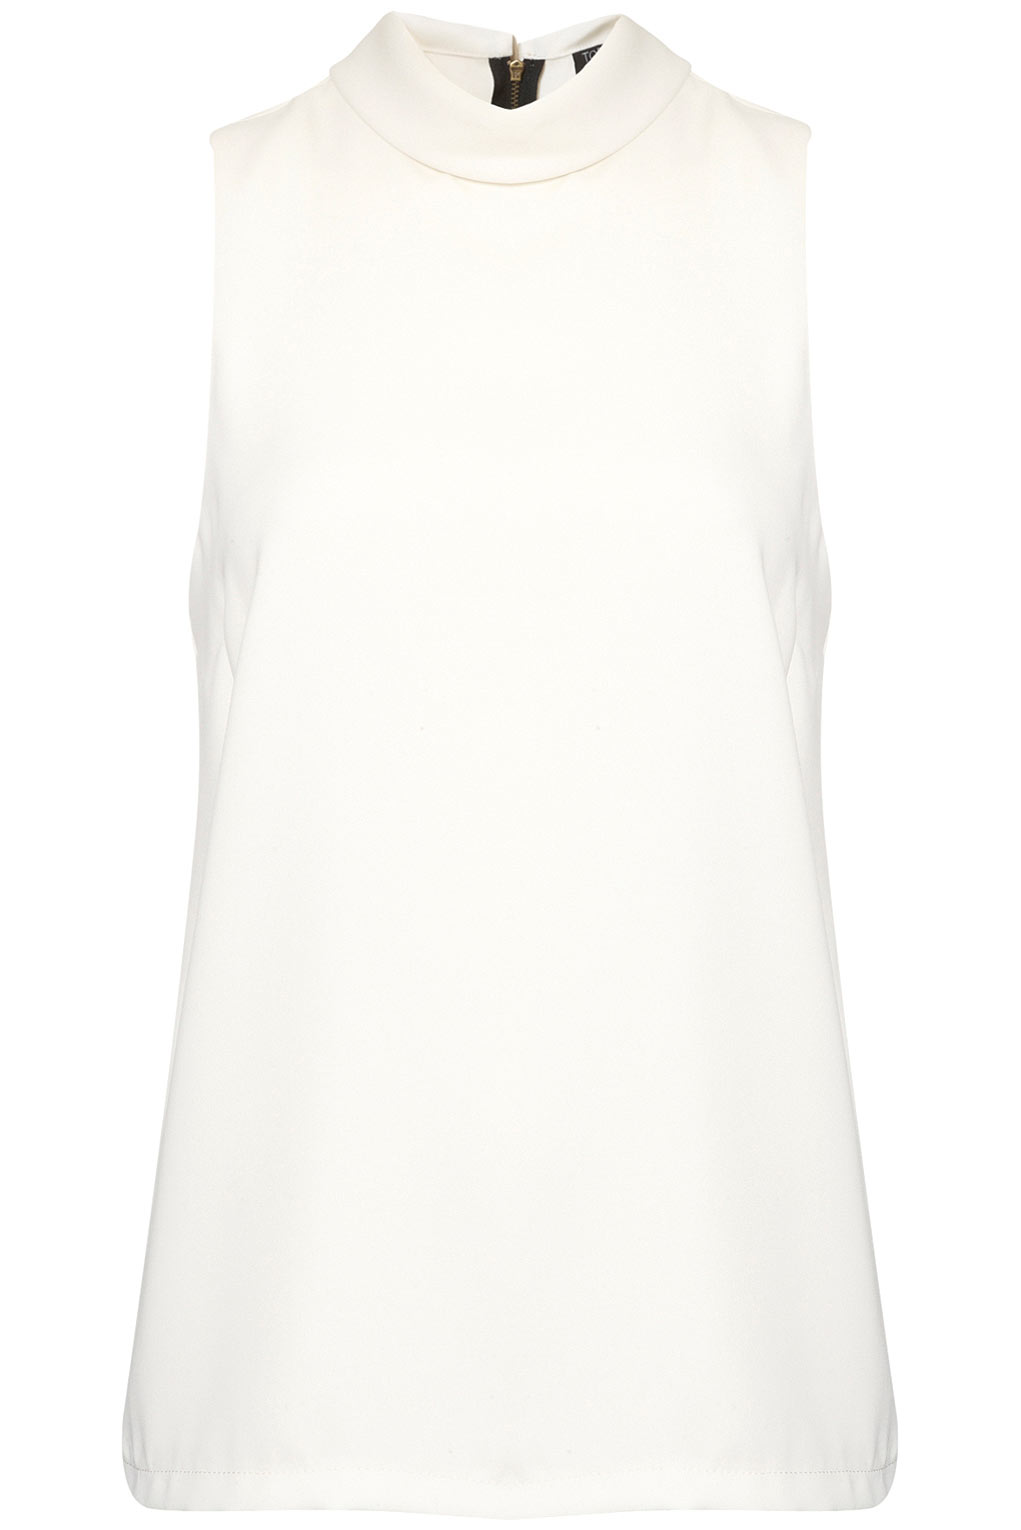 top shop sleeveless roll neck shell - office fashion - how to build rapport